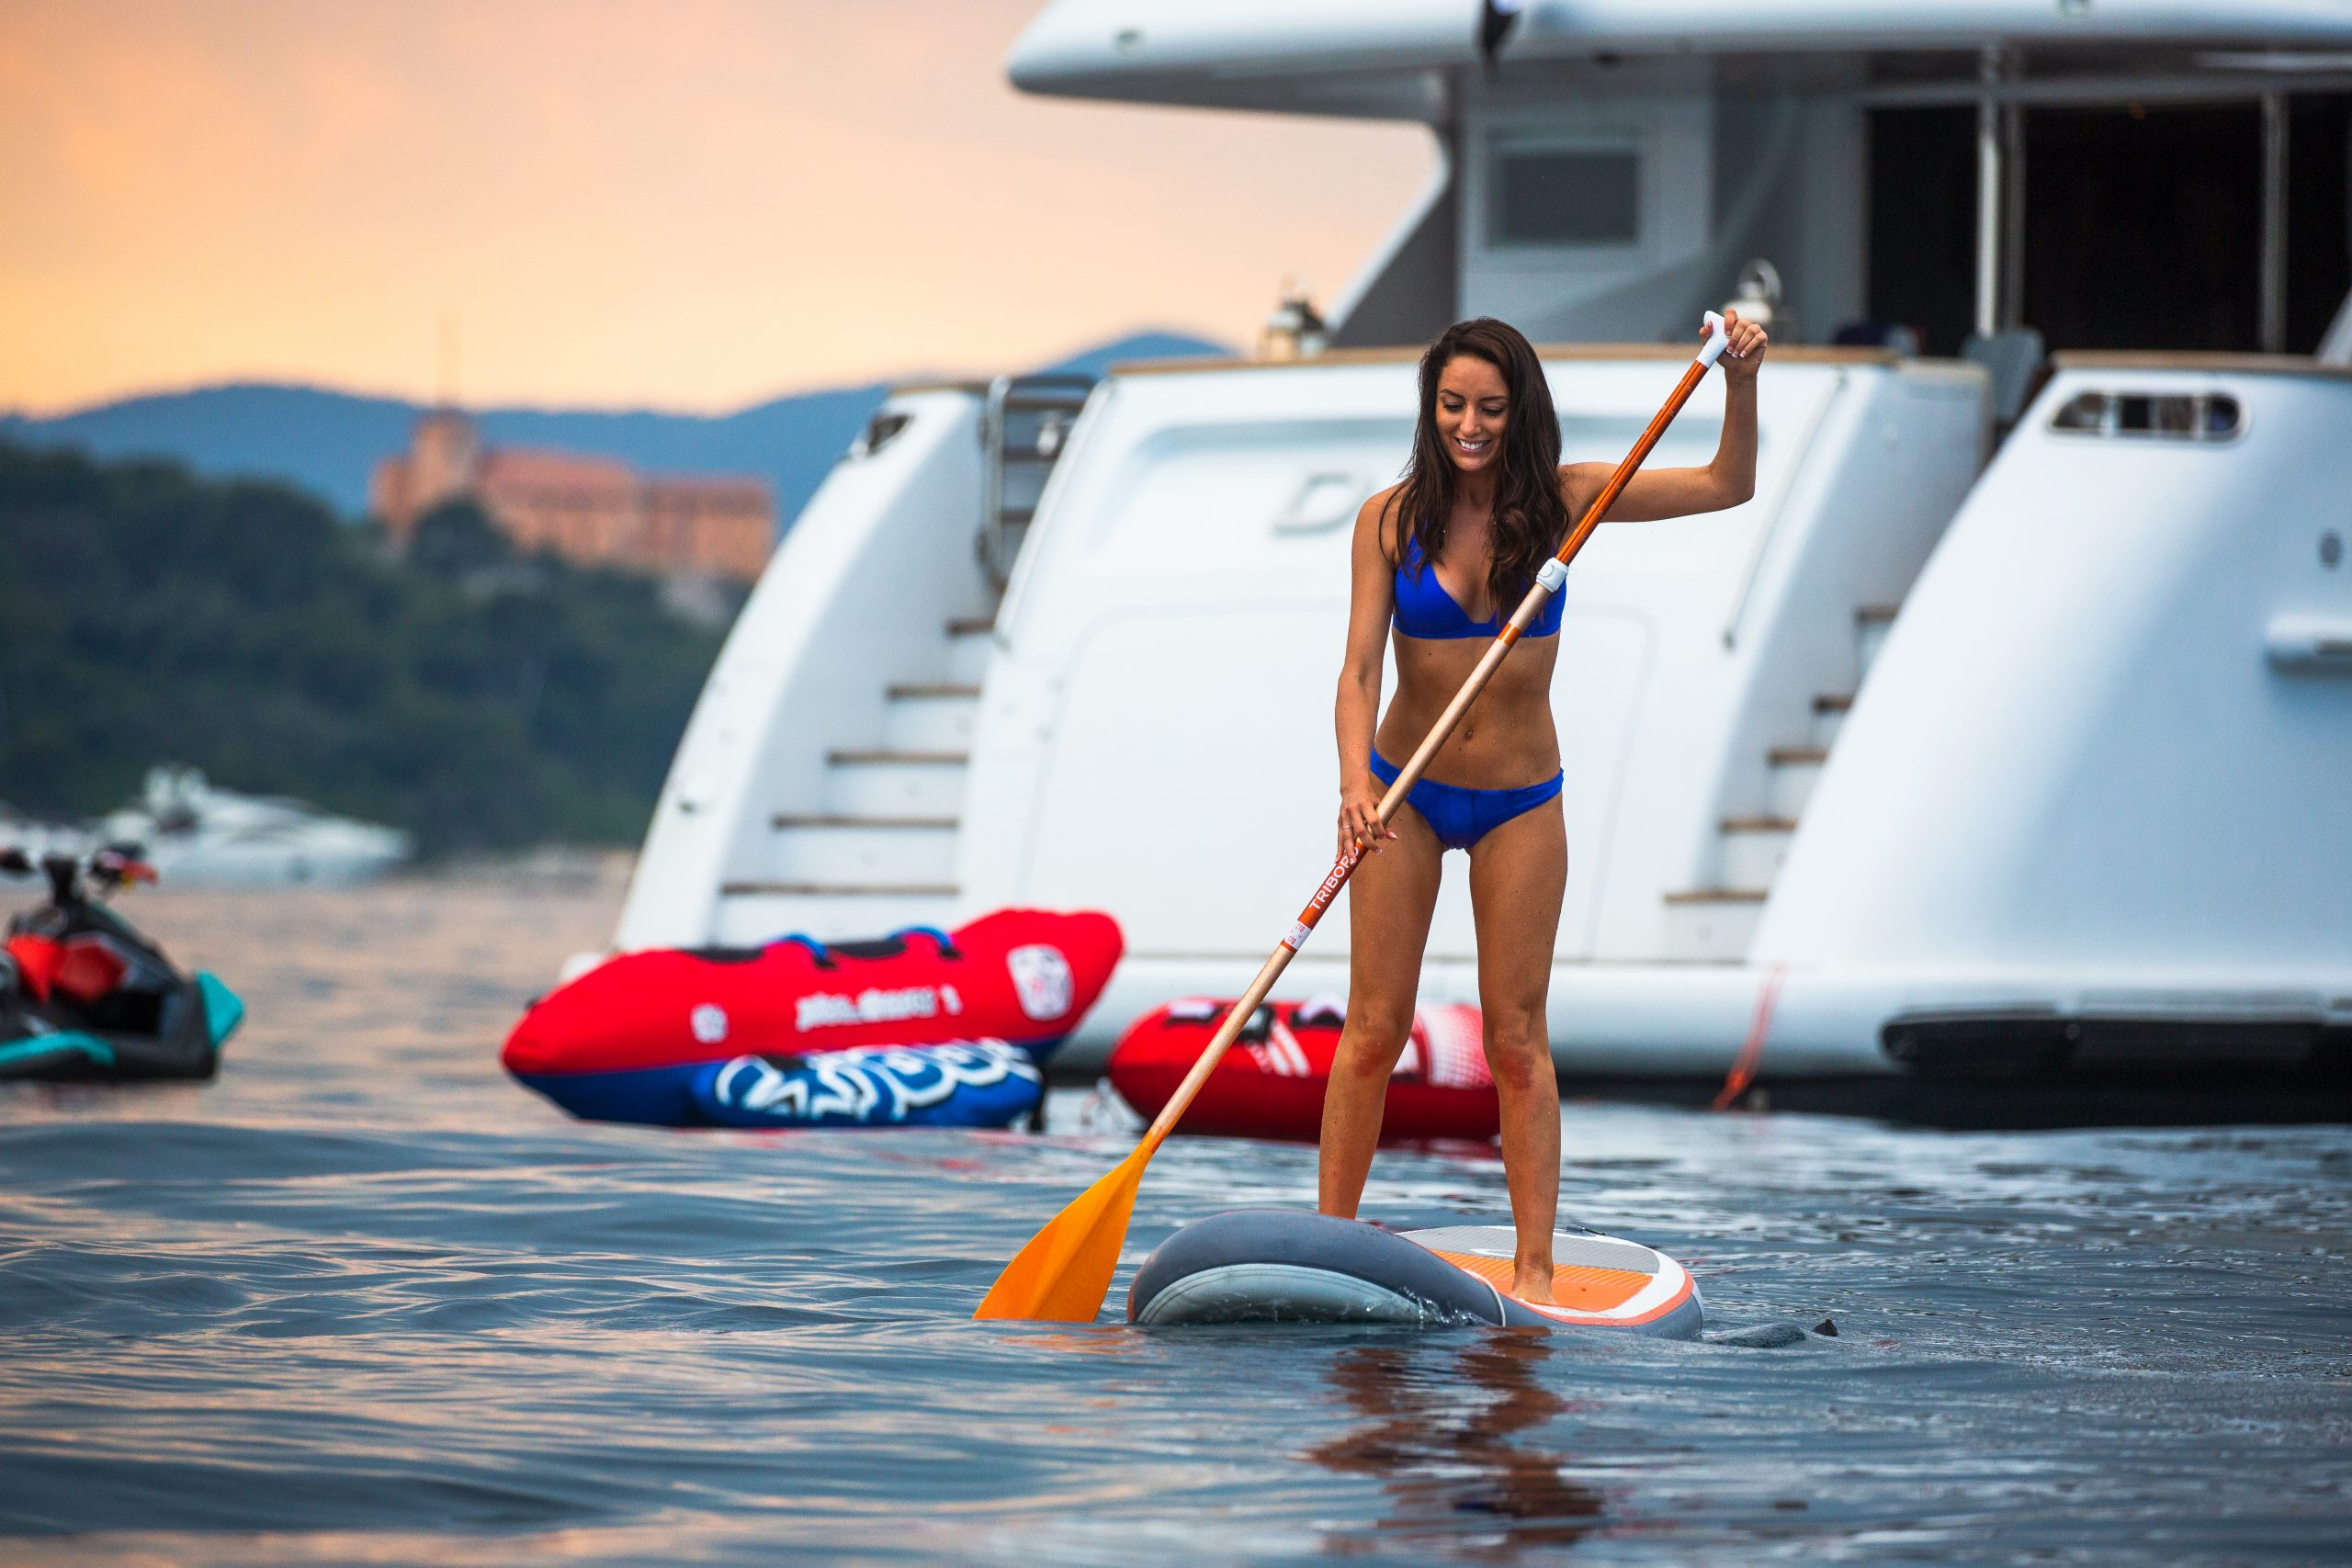 Dubai is the Best Destination for Exciting Water Sports Activities